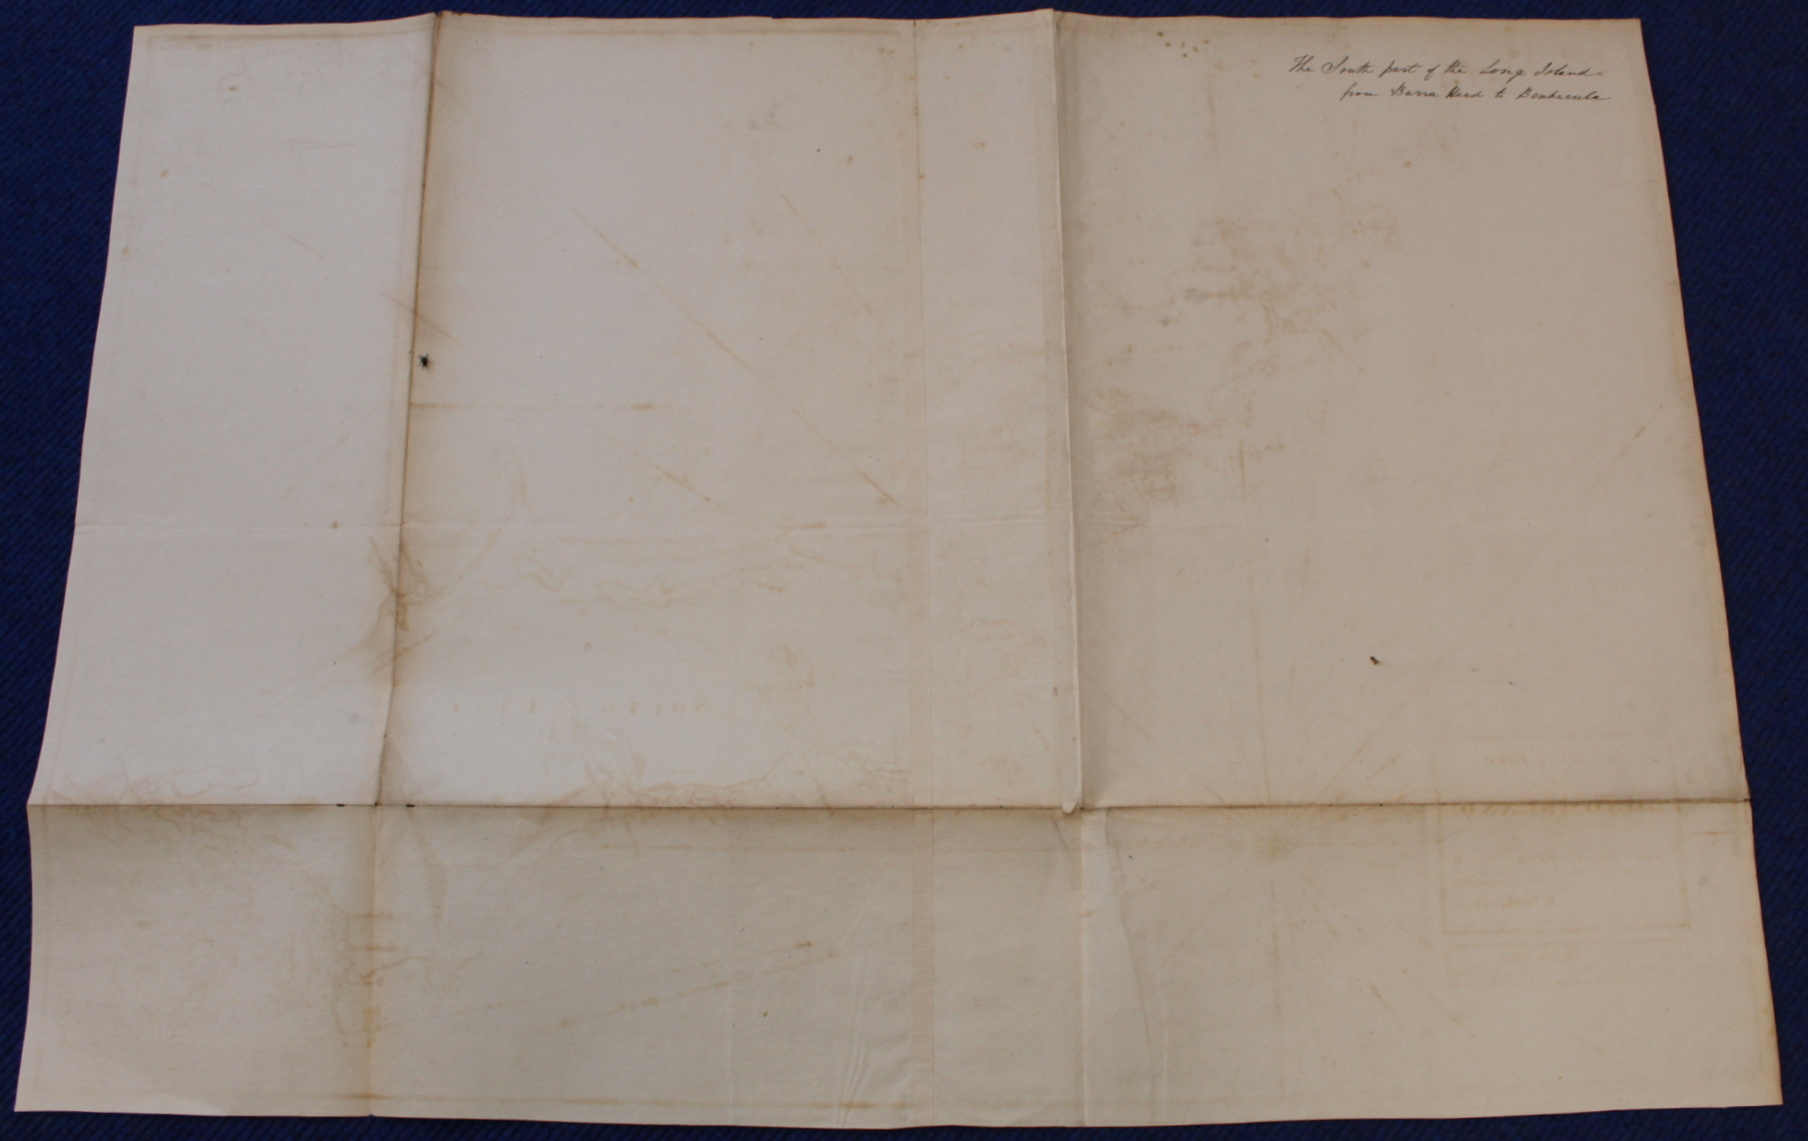 MACKENZIE MURDOCH (SNR.).A General Chart of the West Coast & Western Islands of Scotland from - Image 41 of 66